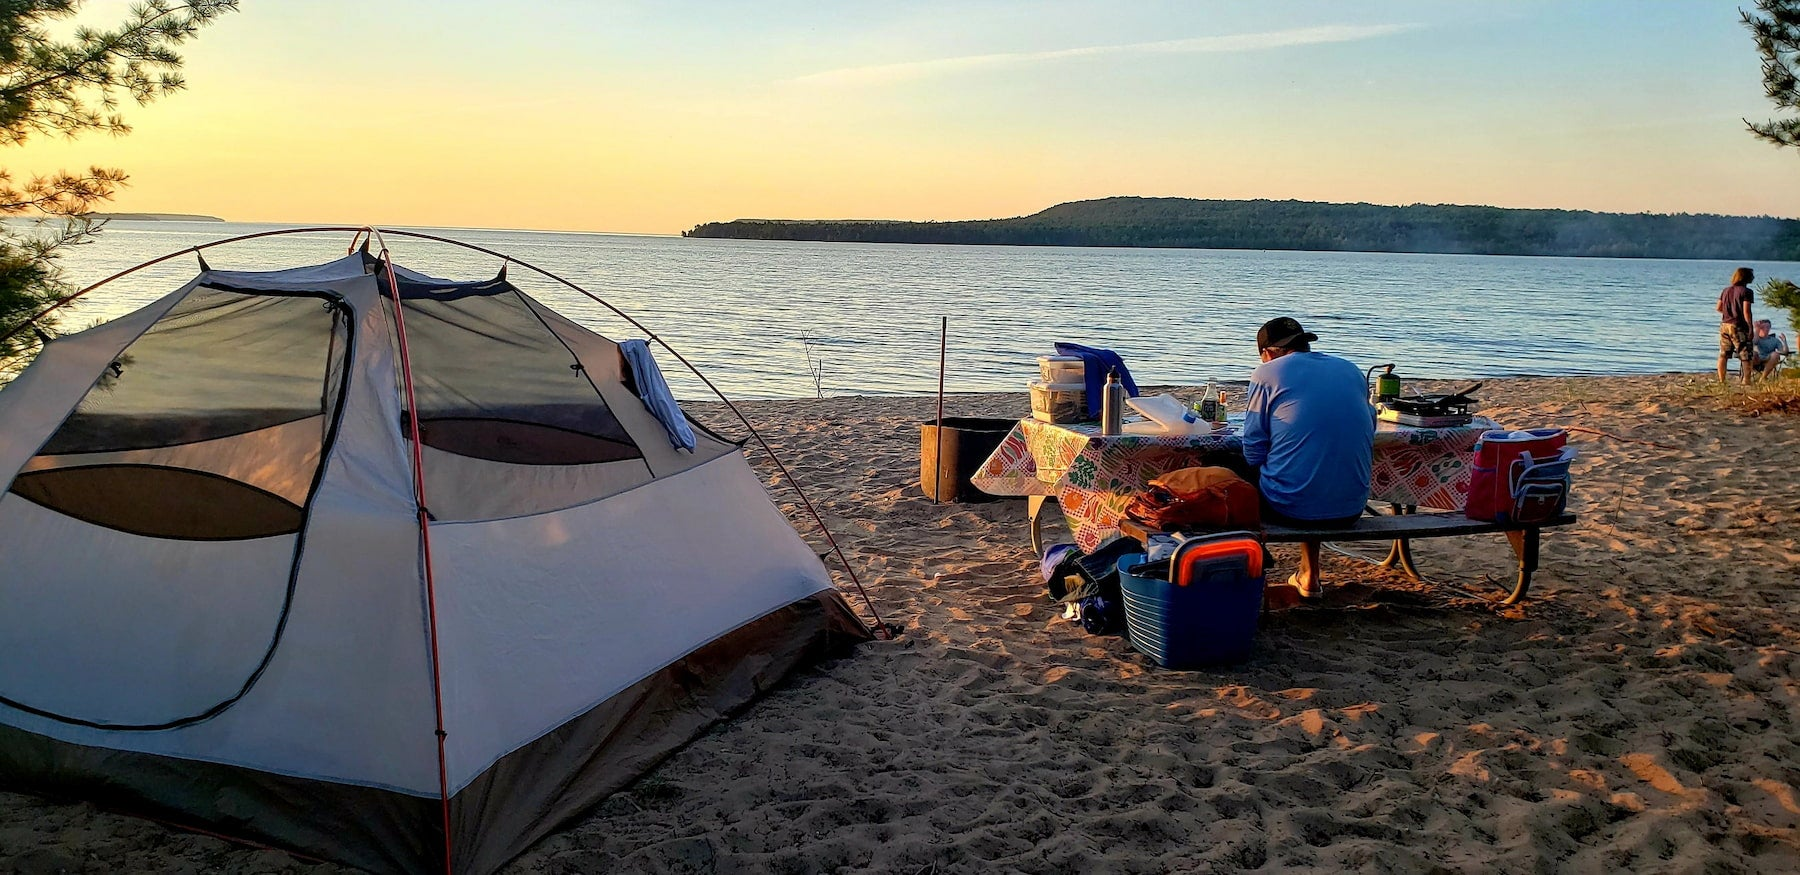 Camper sitting at beach campsite on a picnic table beside their tent during sunset.